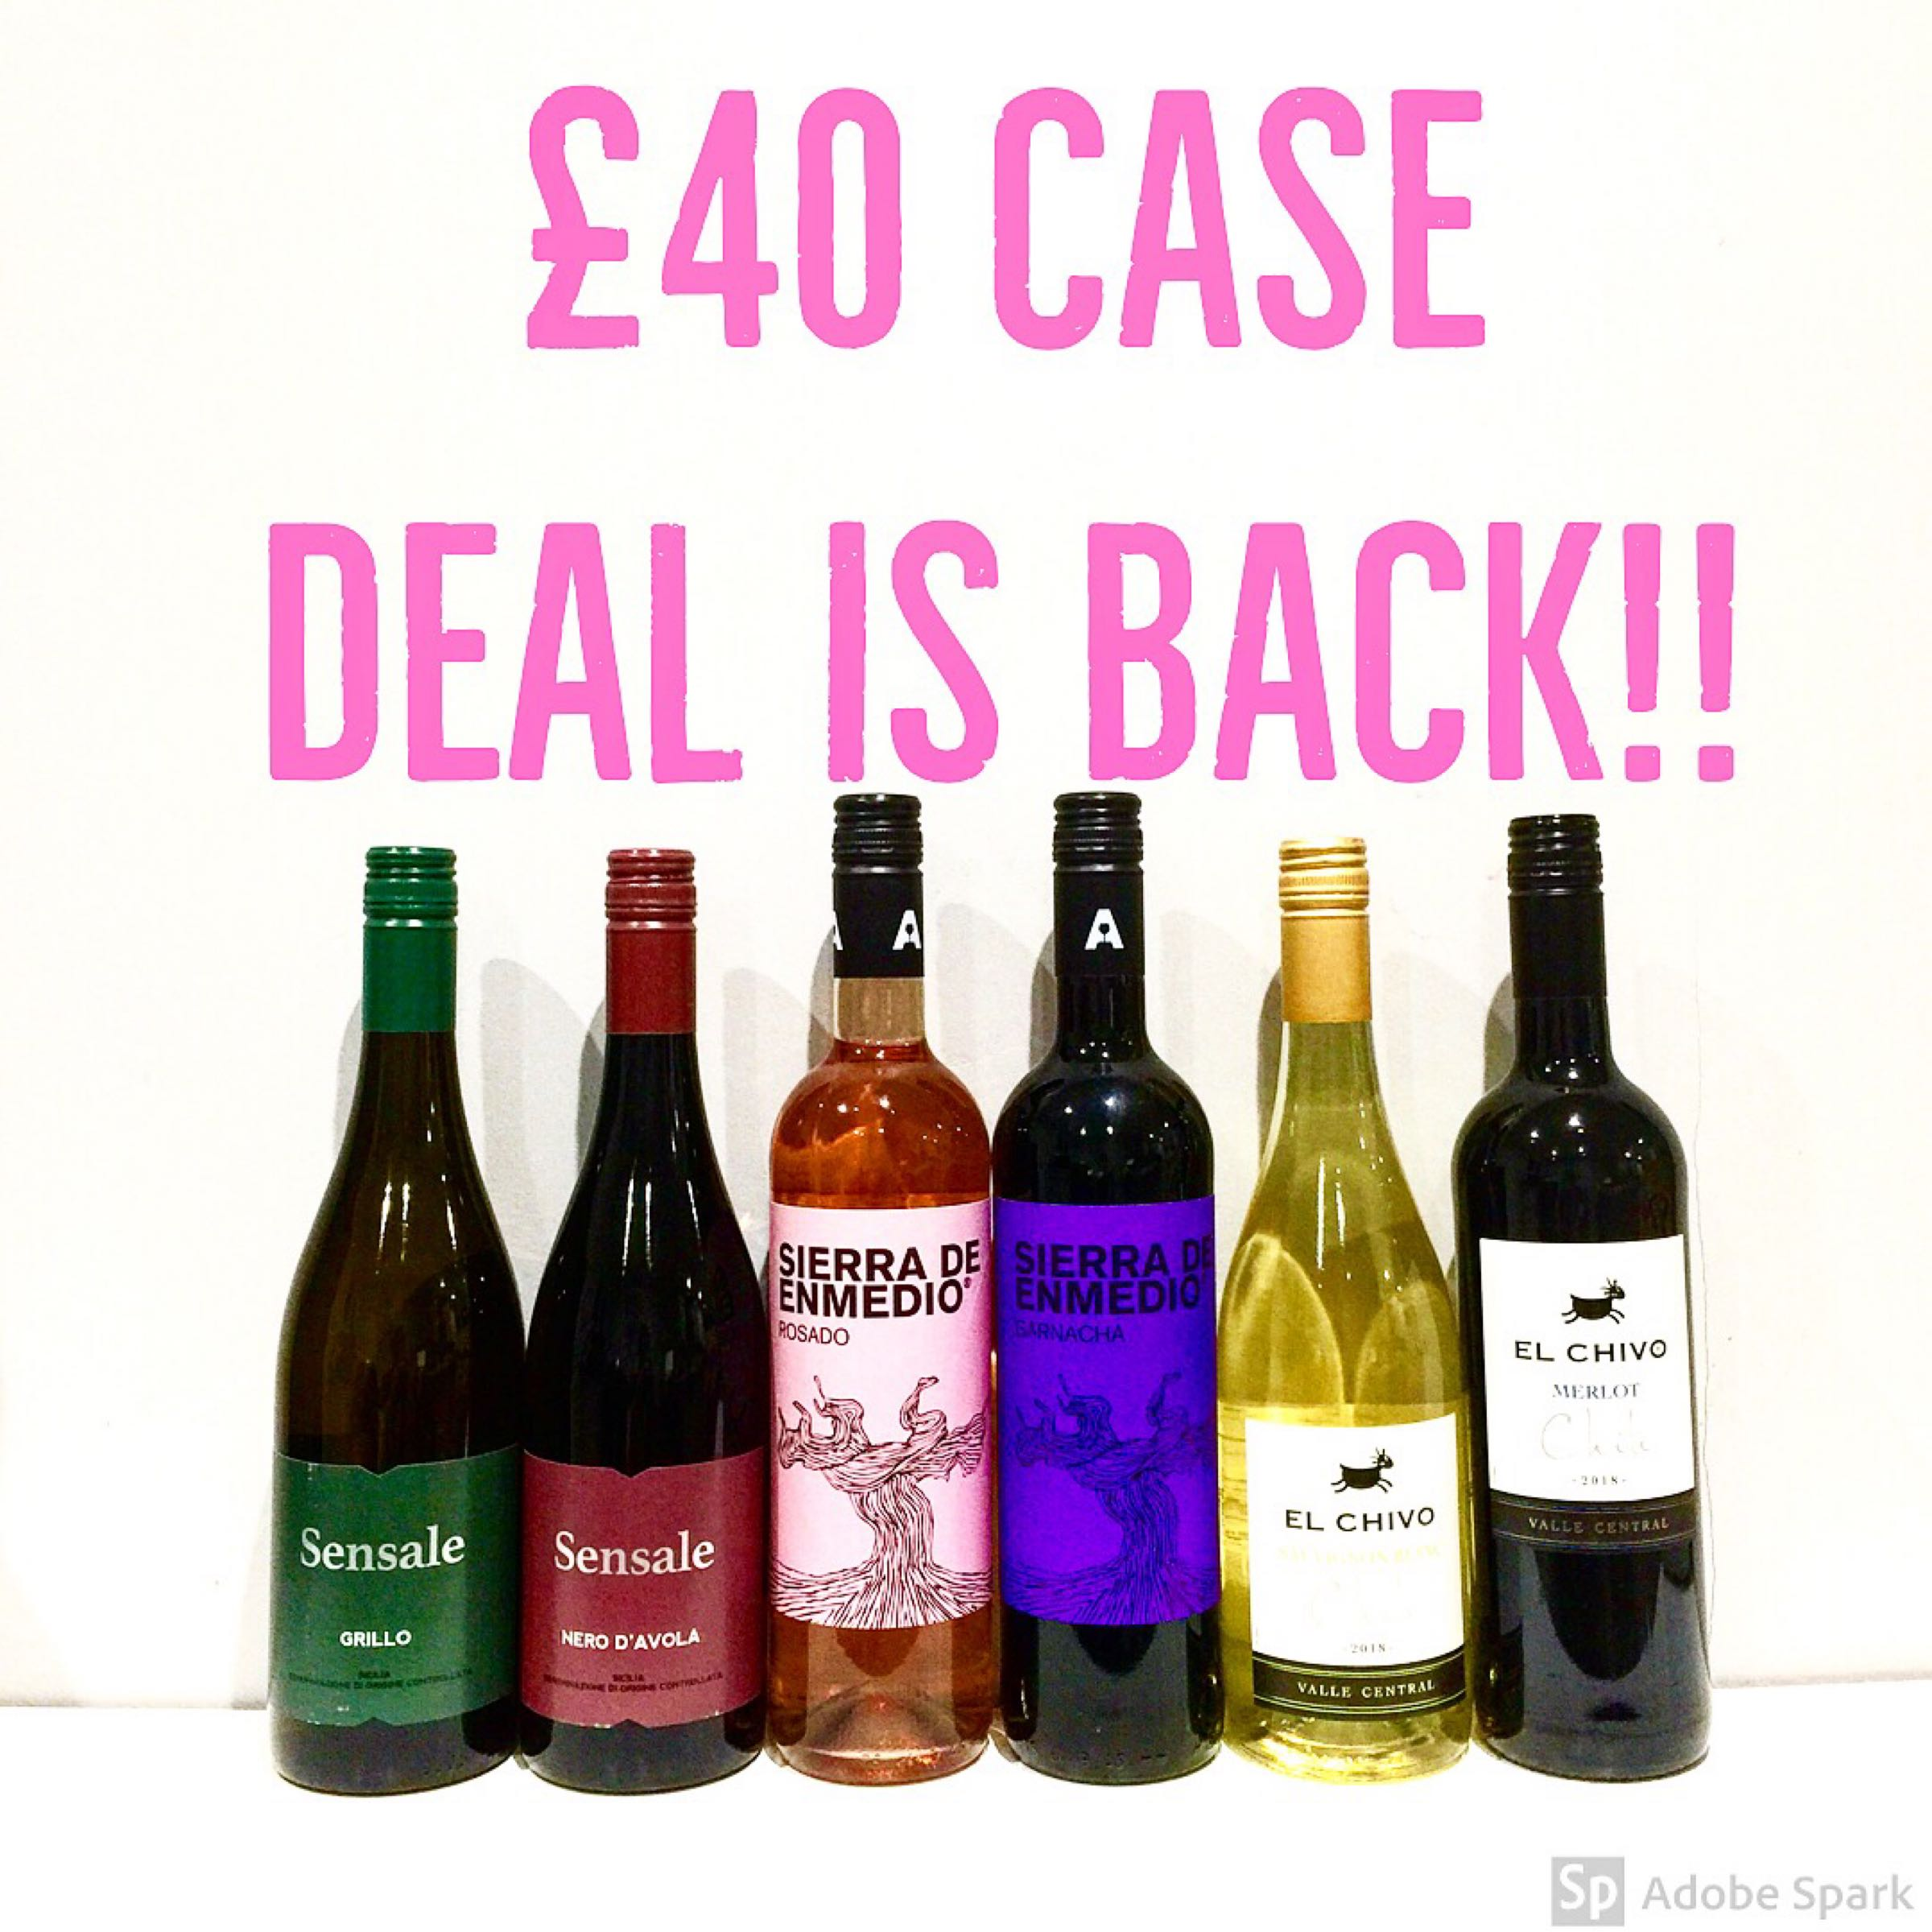 6 Bottle Mixed Case Offer